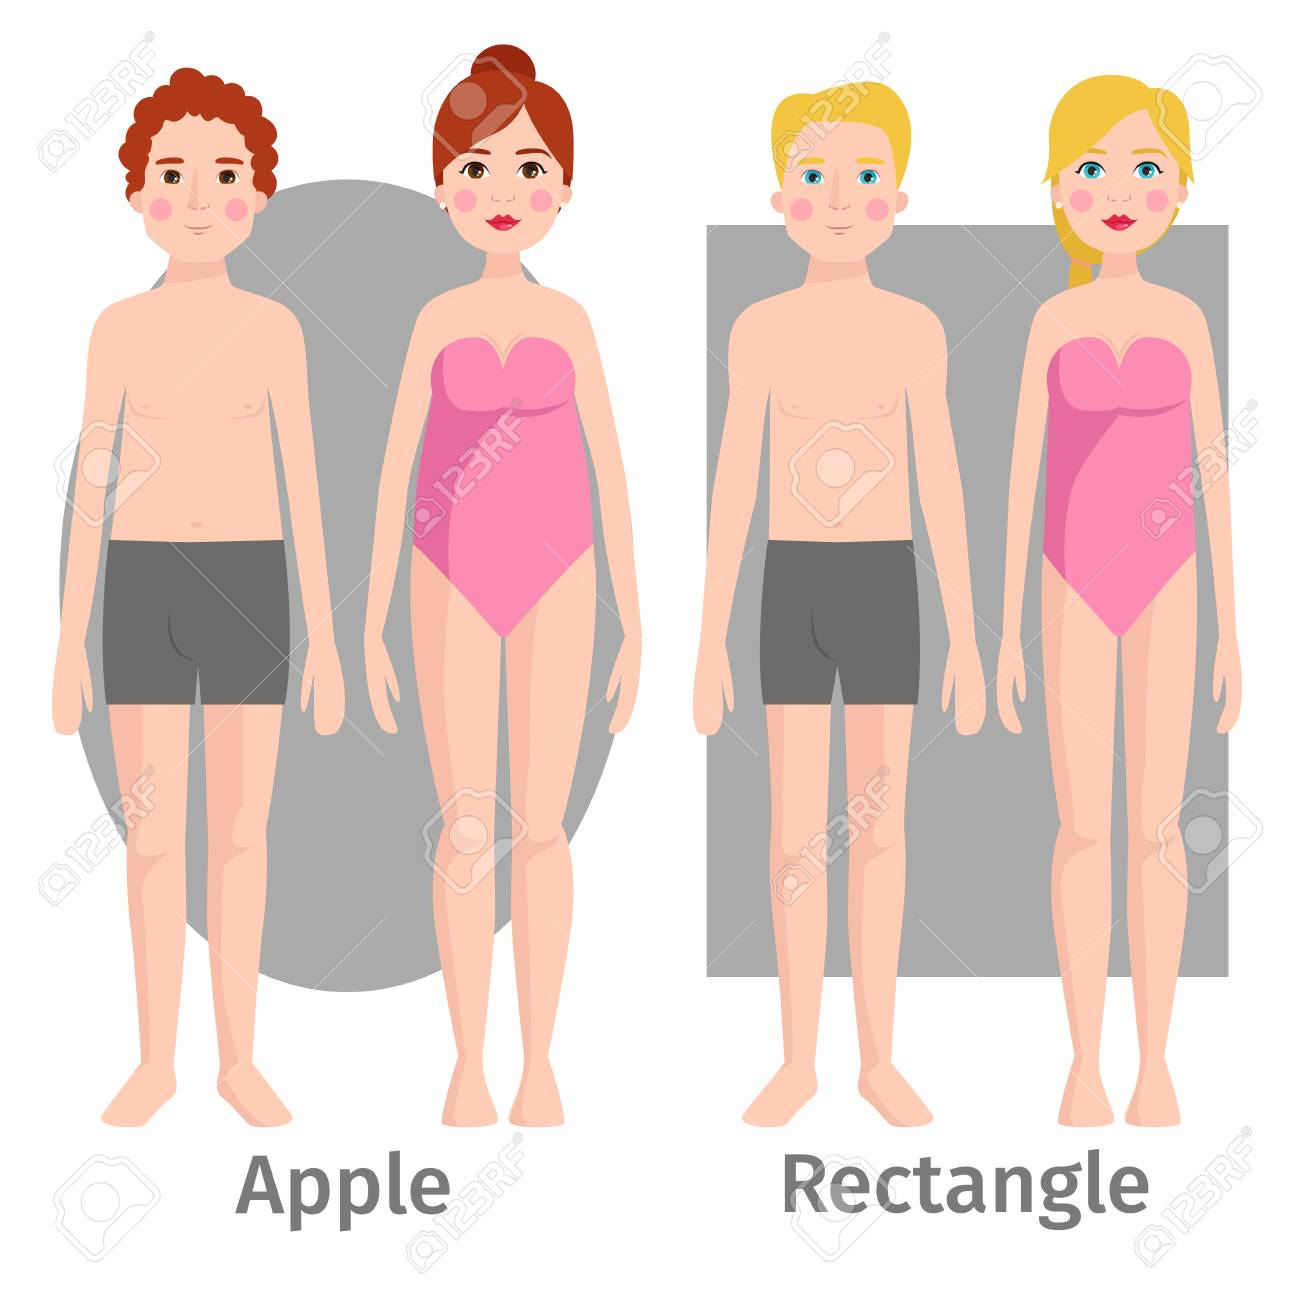 Vector illustration of different body shape types characters